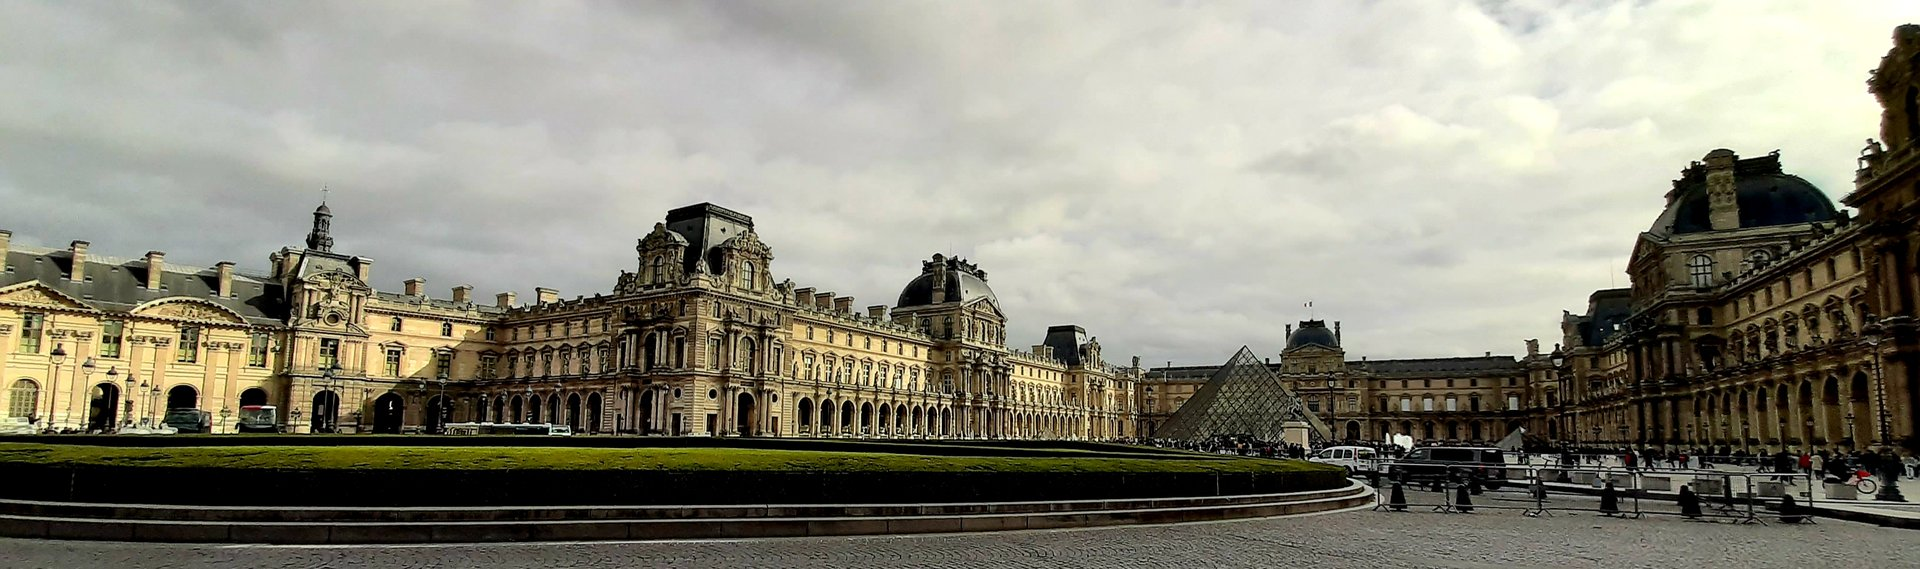 The Louvre And Tuileries Jardin